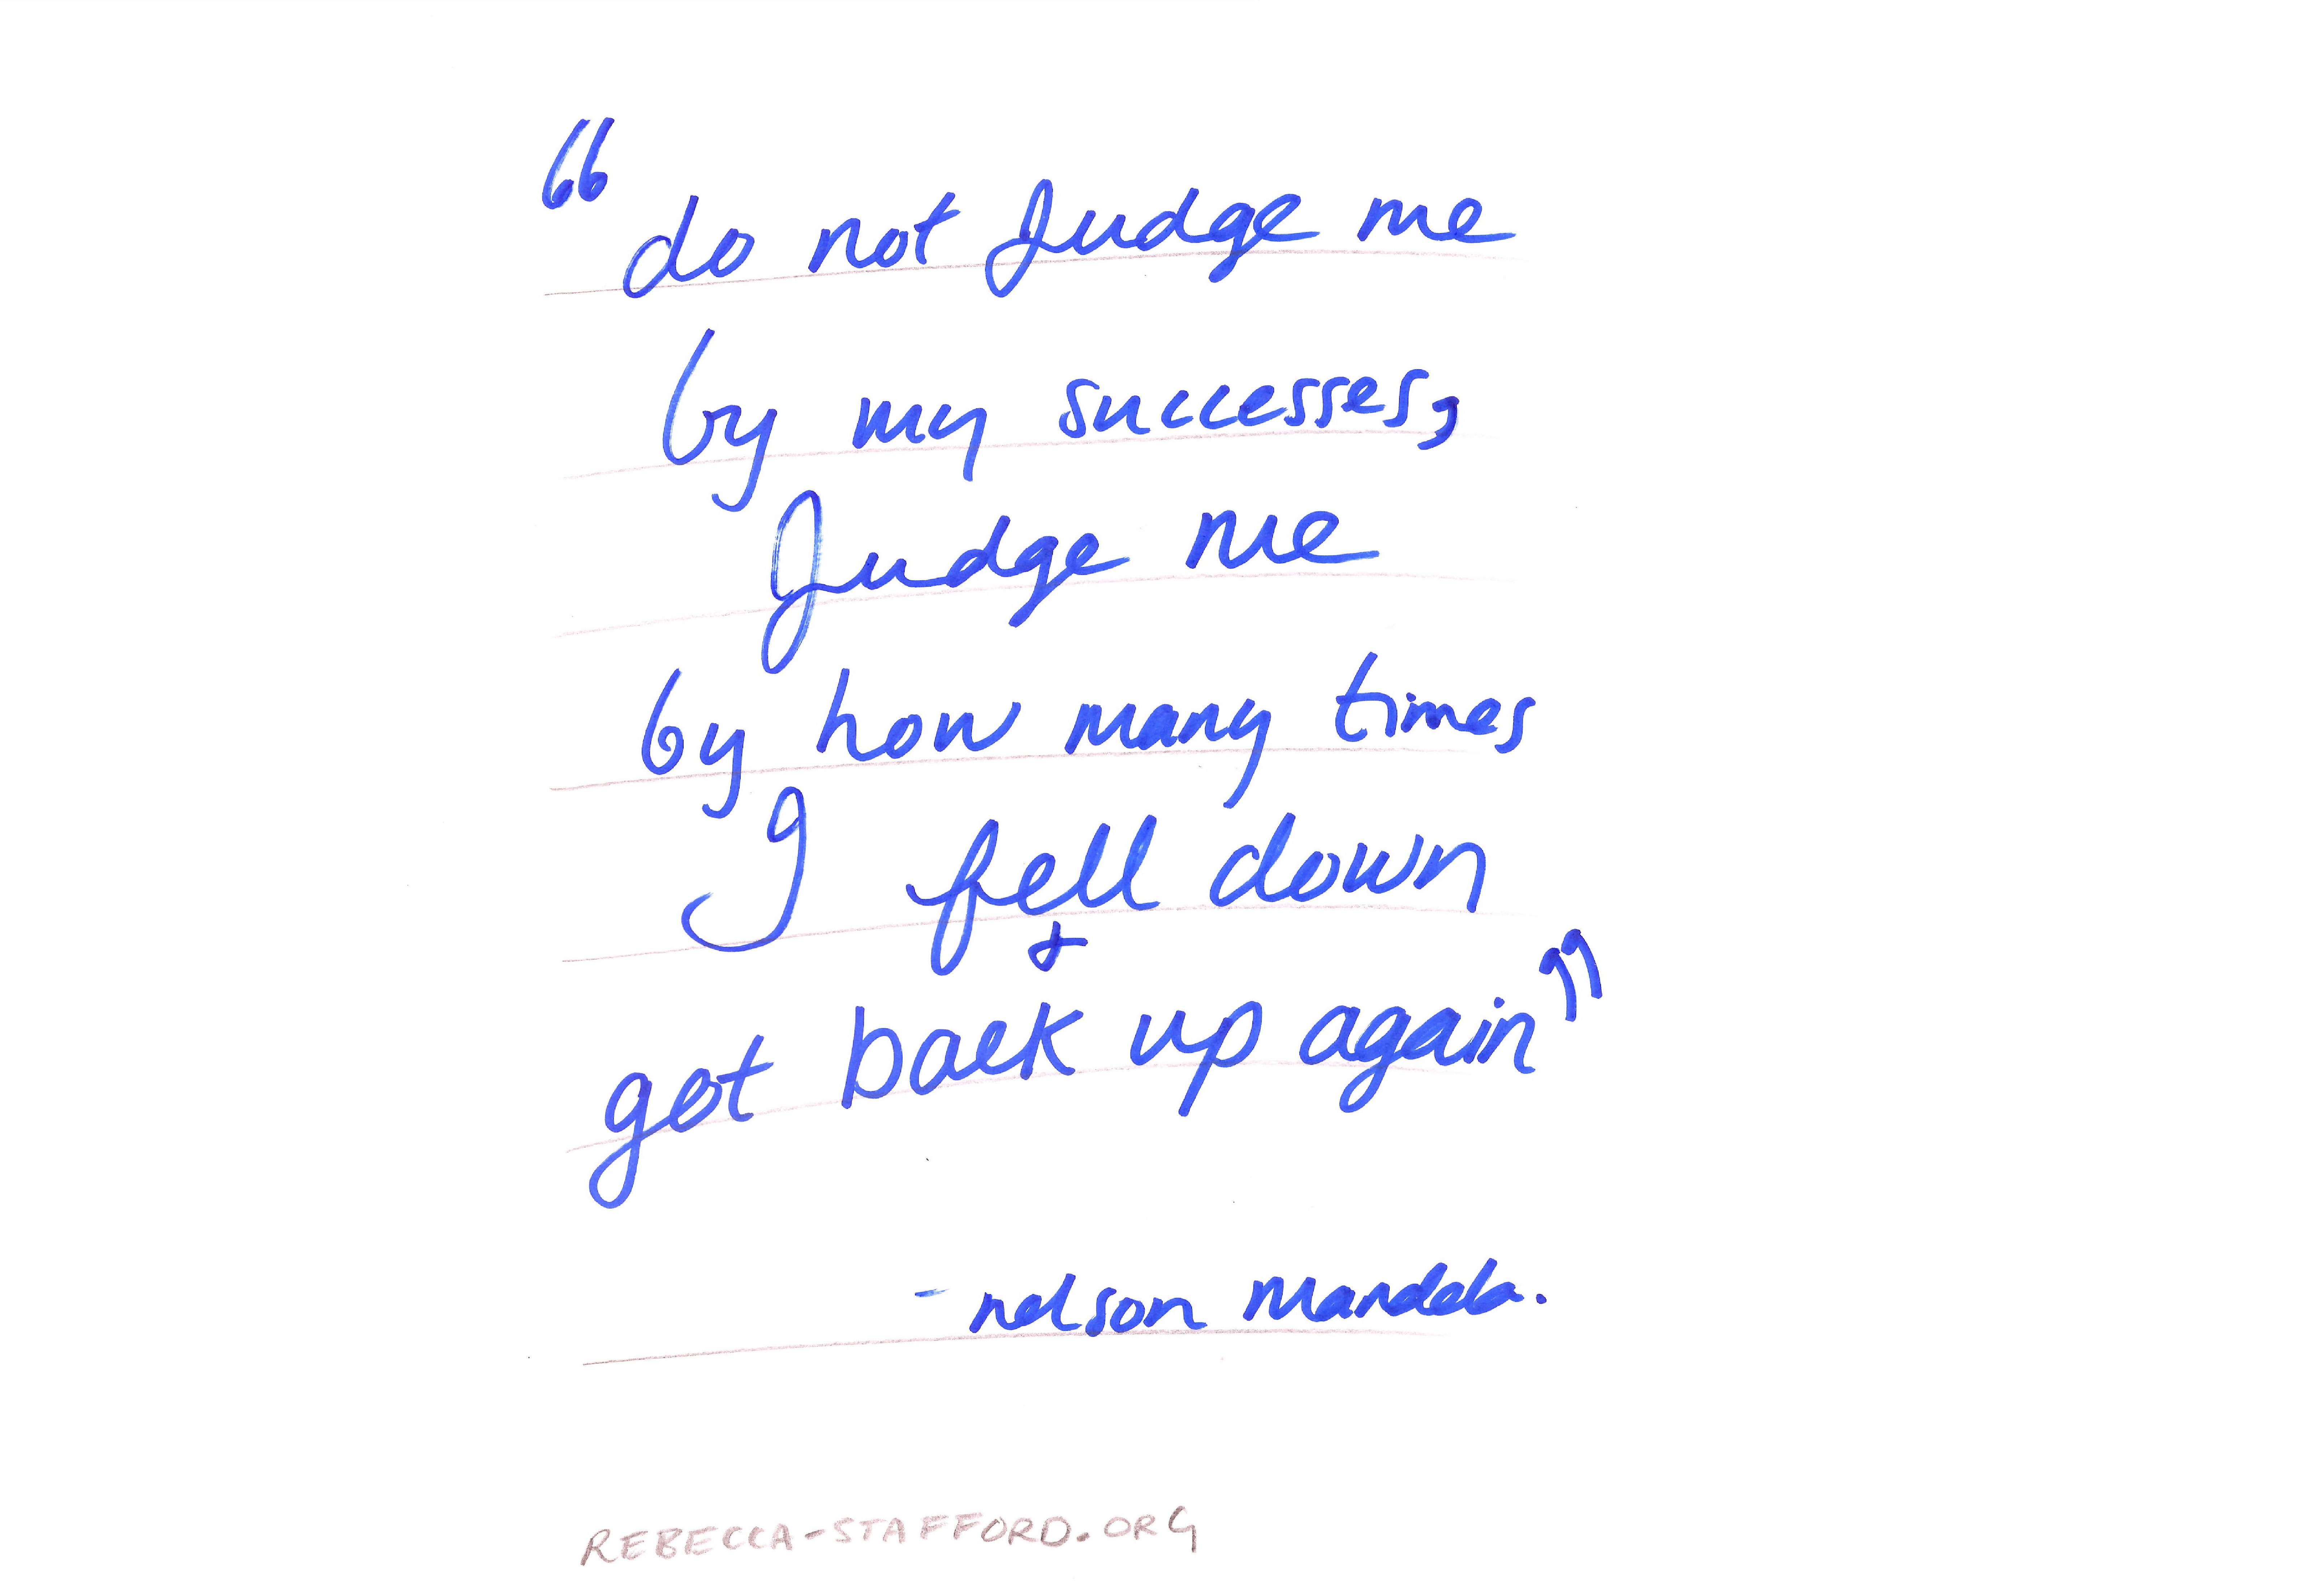 Do not judge me by my successes, judge me by how many times I fell down and got back up again - Nelson Mandela